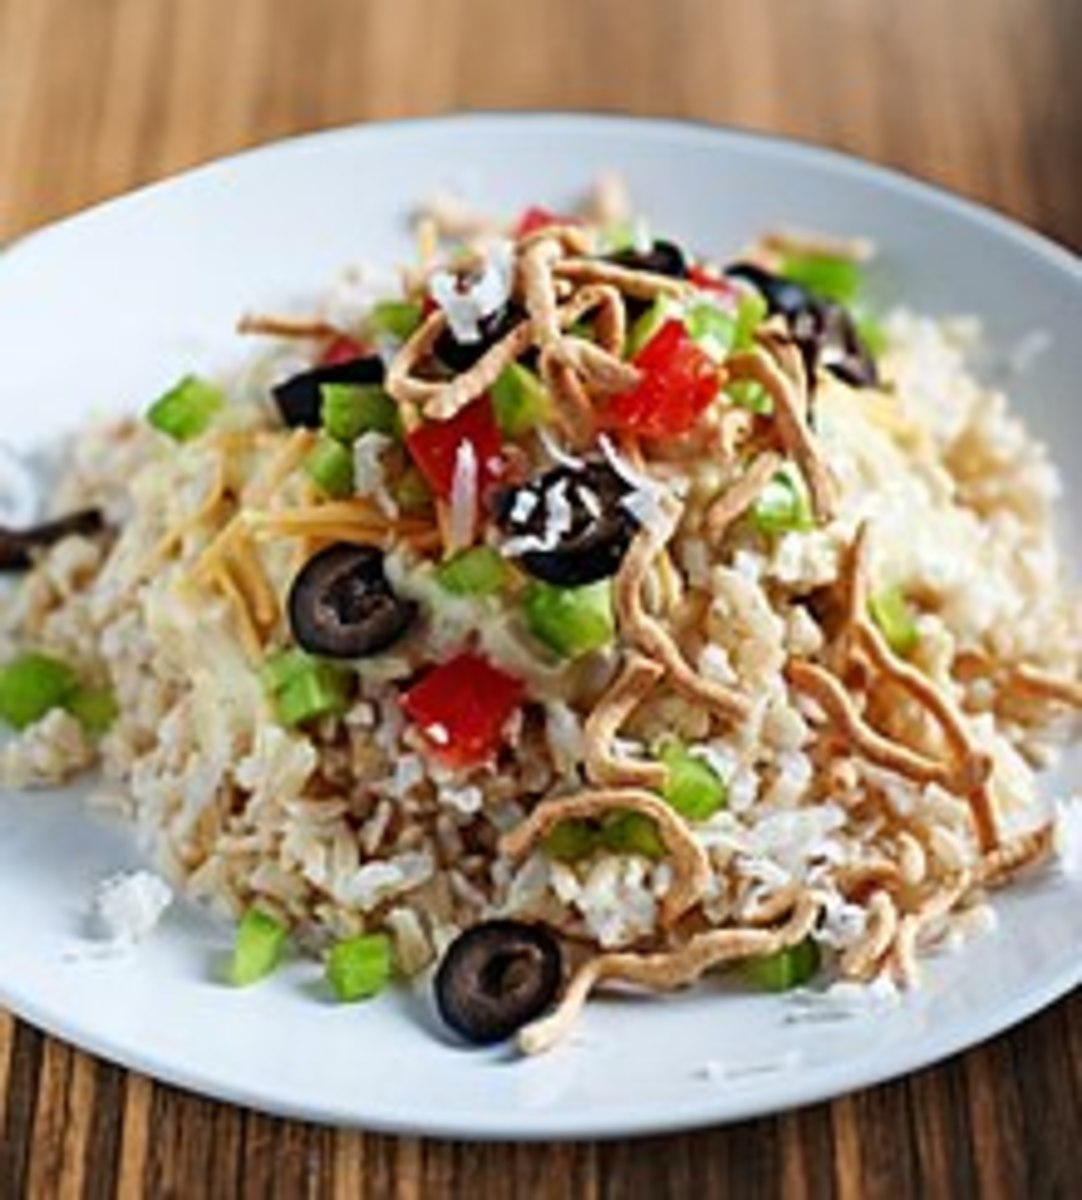 The delectable Hawaiian Haystack is probably more accurately described as rice and Chinese vegetables plus pineapple and/or sweet and sour pineapple sauce and/or chopped peanuts and/or soya sauce. And maybe olives and cheese.